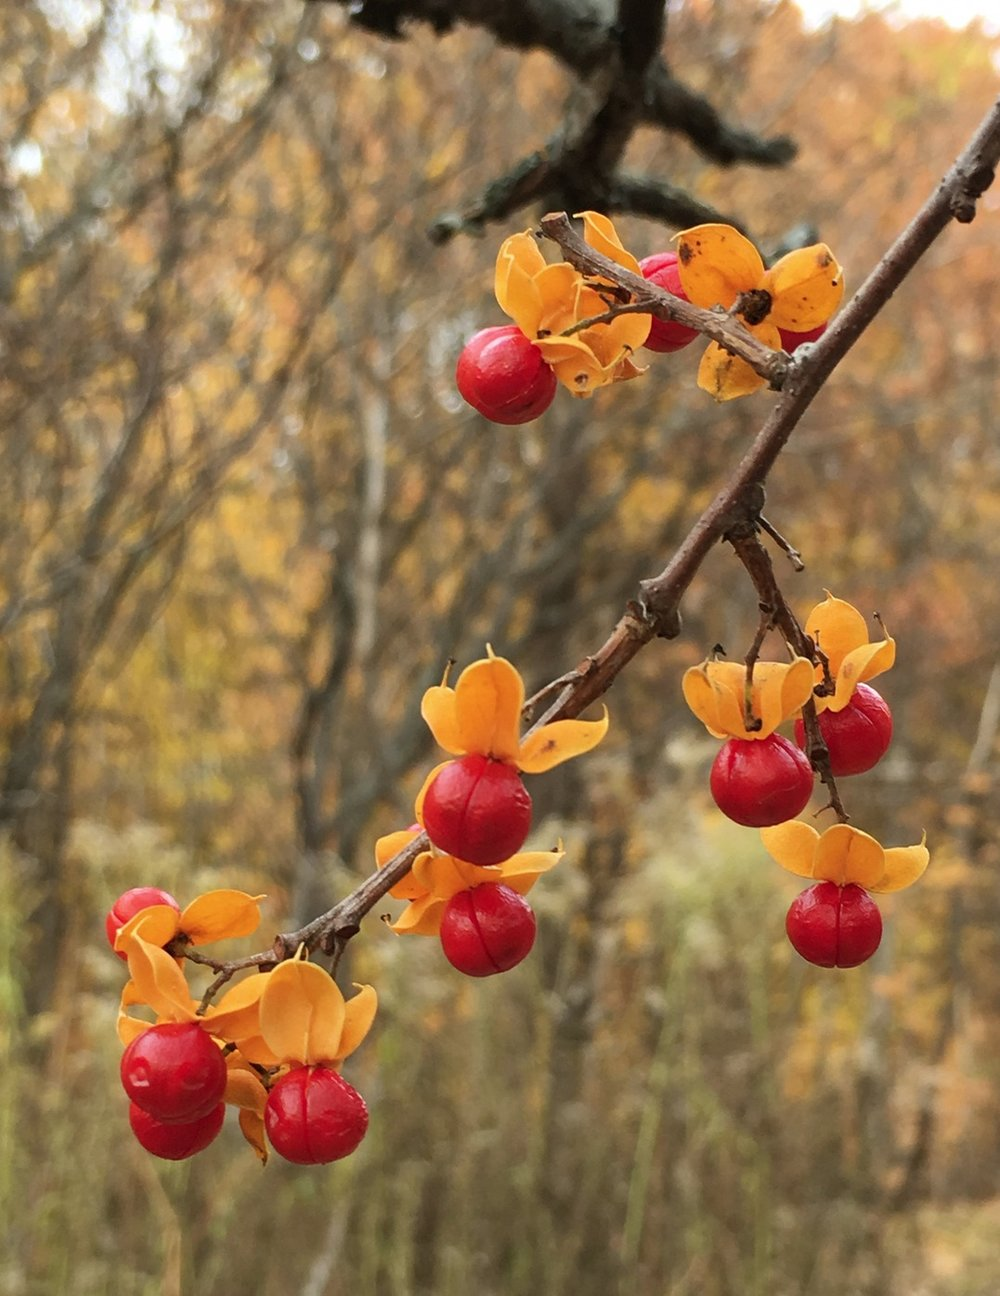 This was taken in the late fall in the North Woods of Skidmore College. I'm assuming it's a winter berry (although most of the wild winter berries seem to have much smaller berries, so it might not be). This one appealed to me not just for the coloration, but also for the design of the berries with their orangey leaves—almost getting ready to parachute down to the ground. How they weren't already eaten by birds amazes me. ©2017 Sean Walmsley;